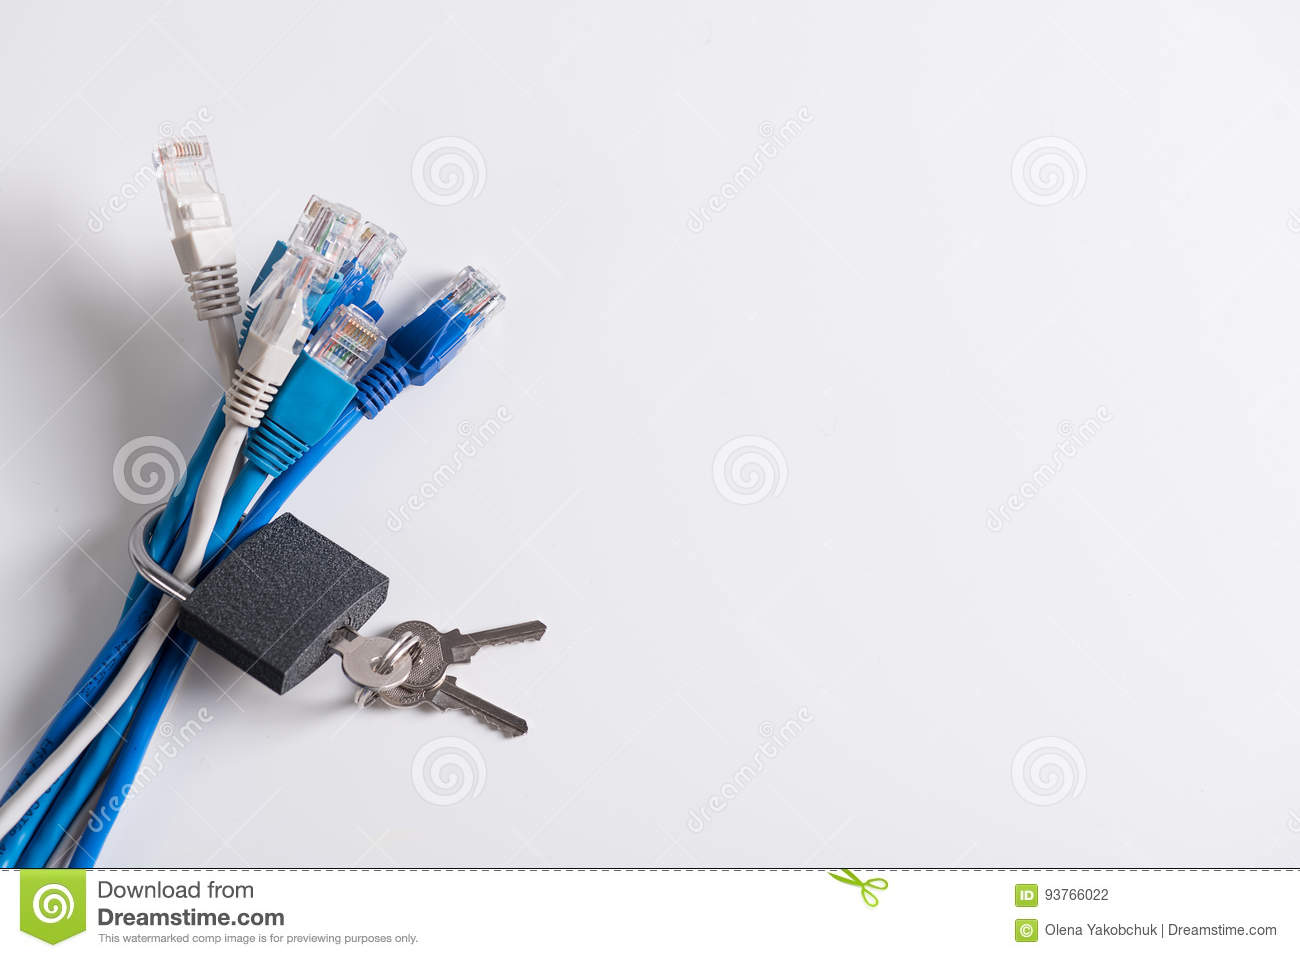 Internet Wires With Silver Coupling On It Stock Photo - Image of ...